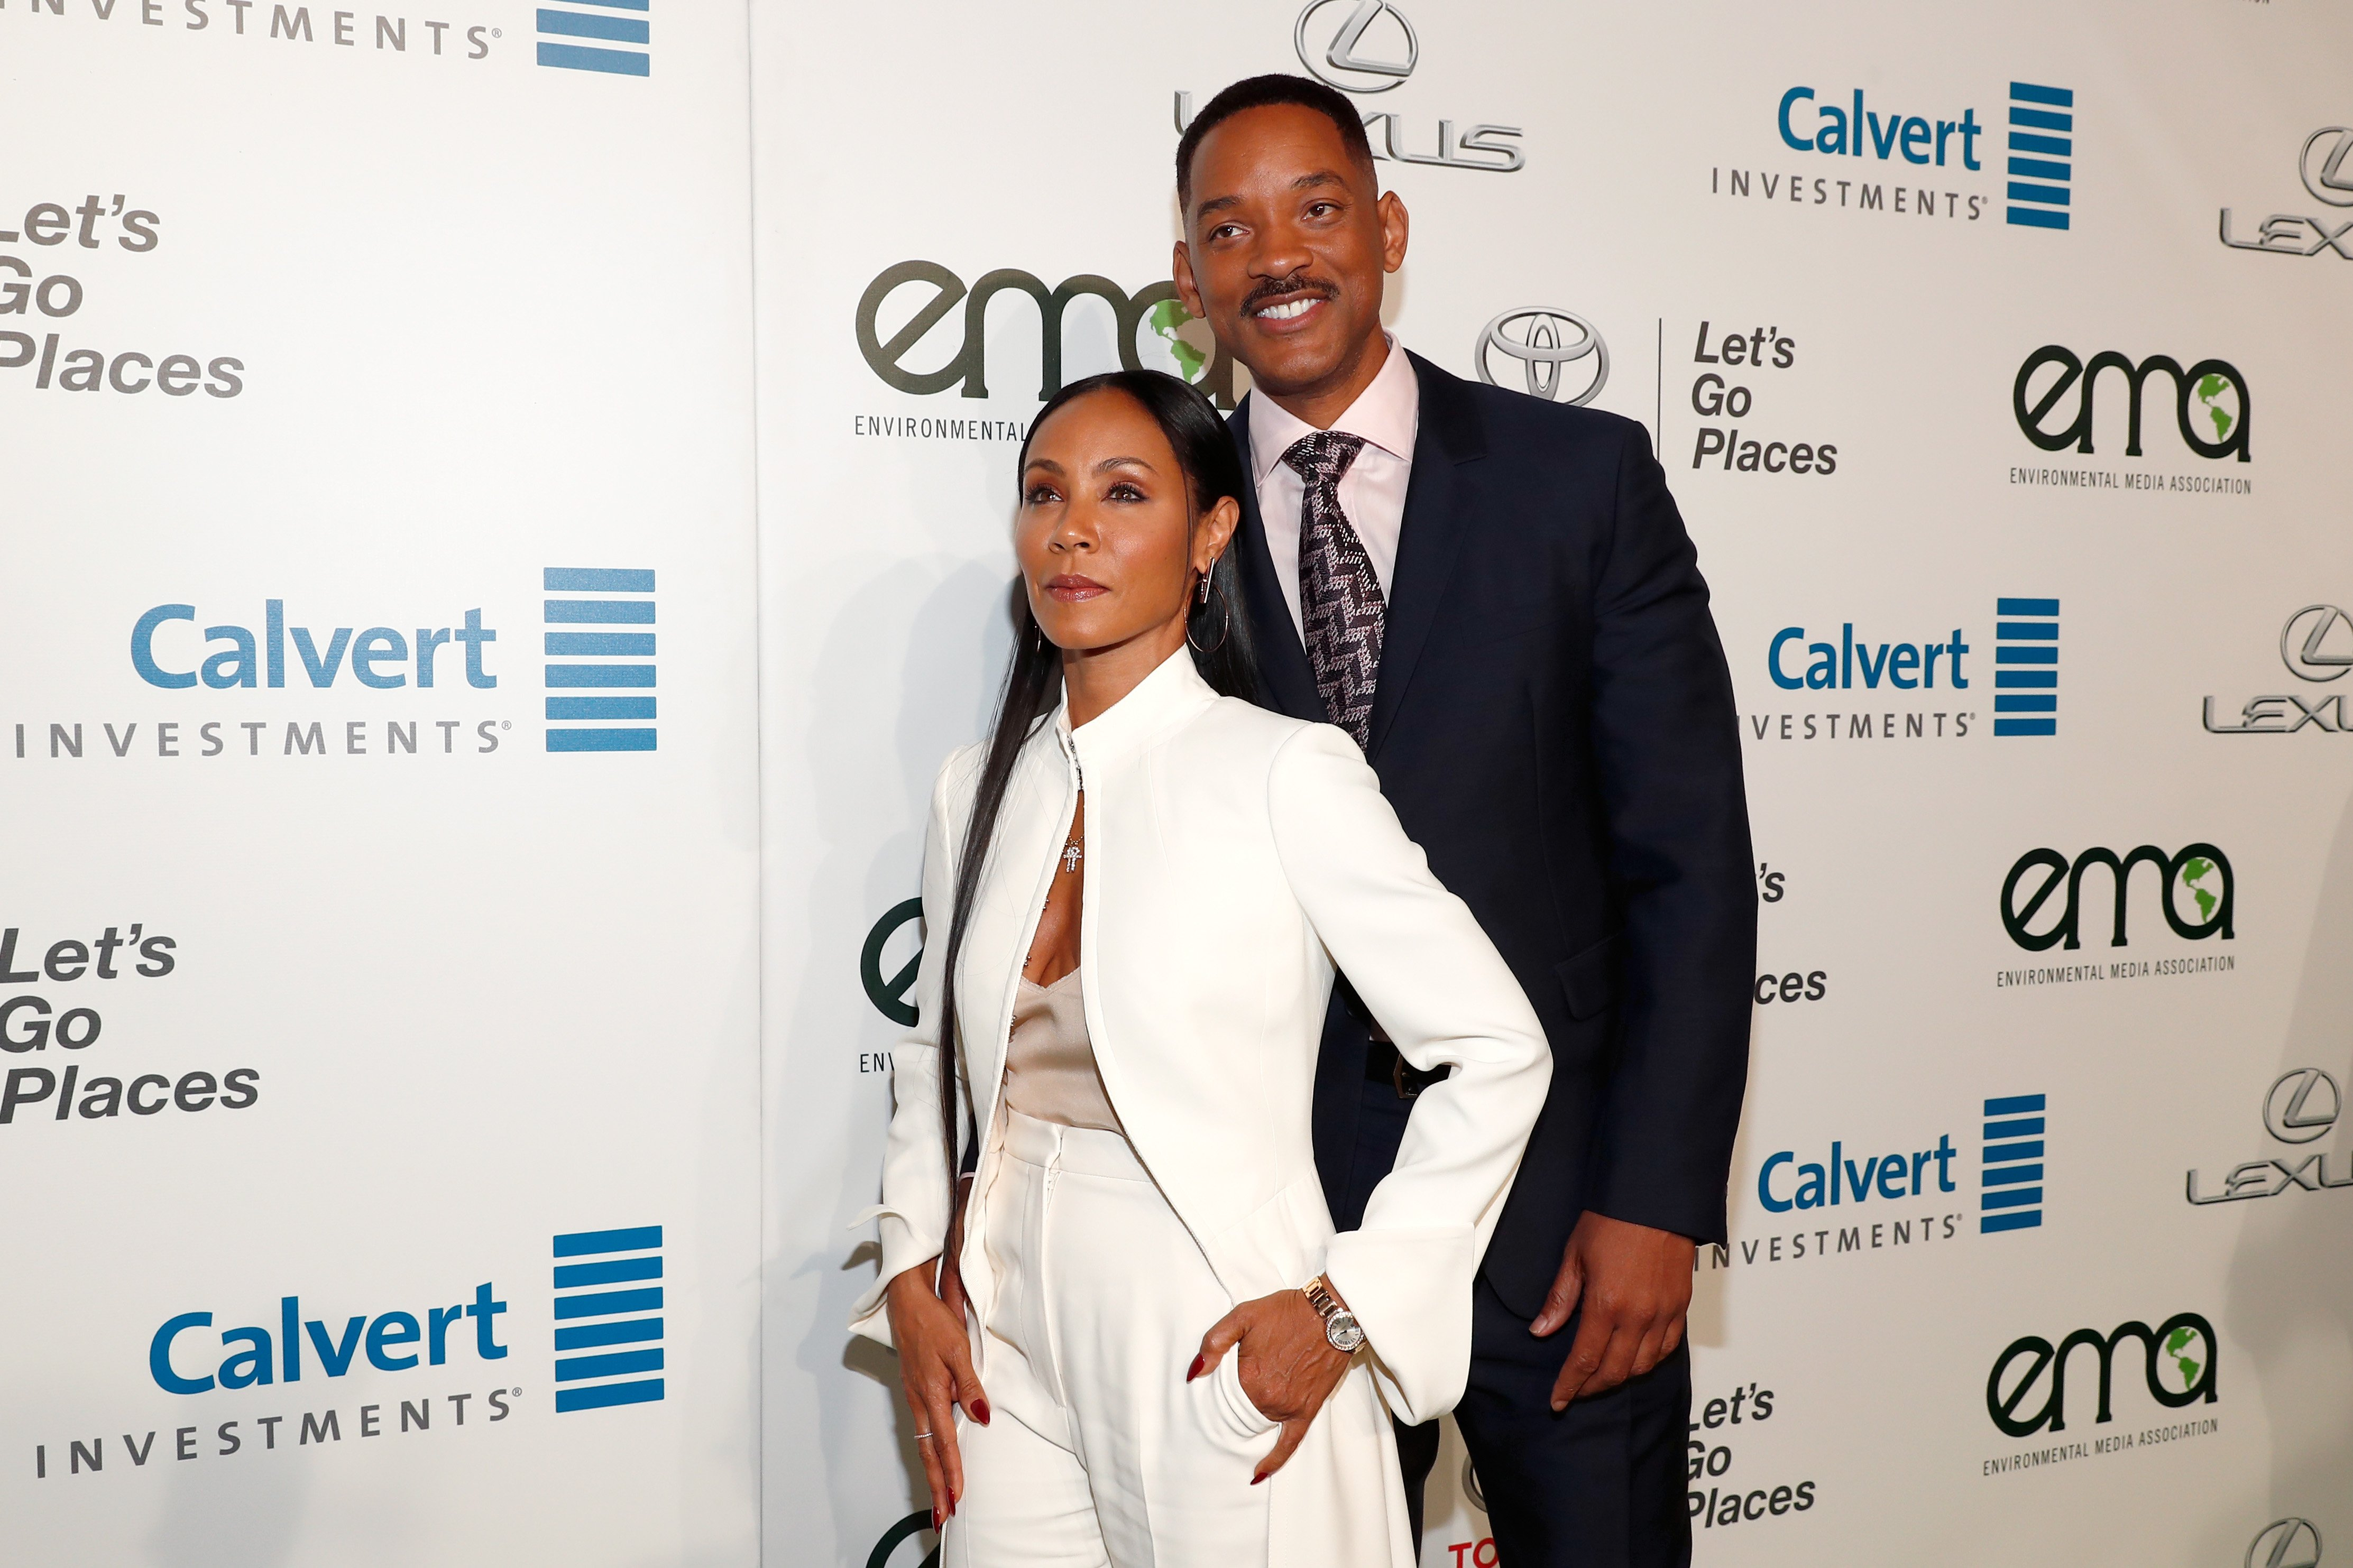 Actors Jada Pinkett Smith (L) and Will Smith attend the Environmental Media Association 26th Annual EMA Awards Presented By Toyota, Lexus And Calvert at Warner Bros. Studios on October 22, 2016| Photo: Getty Images